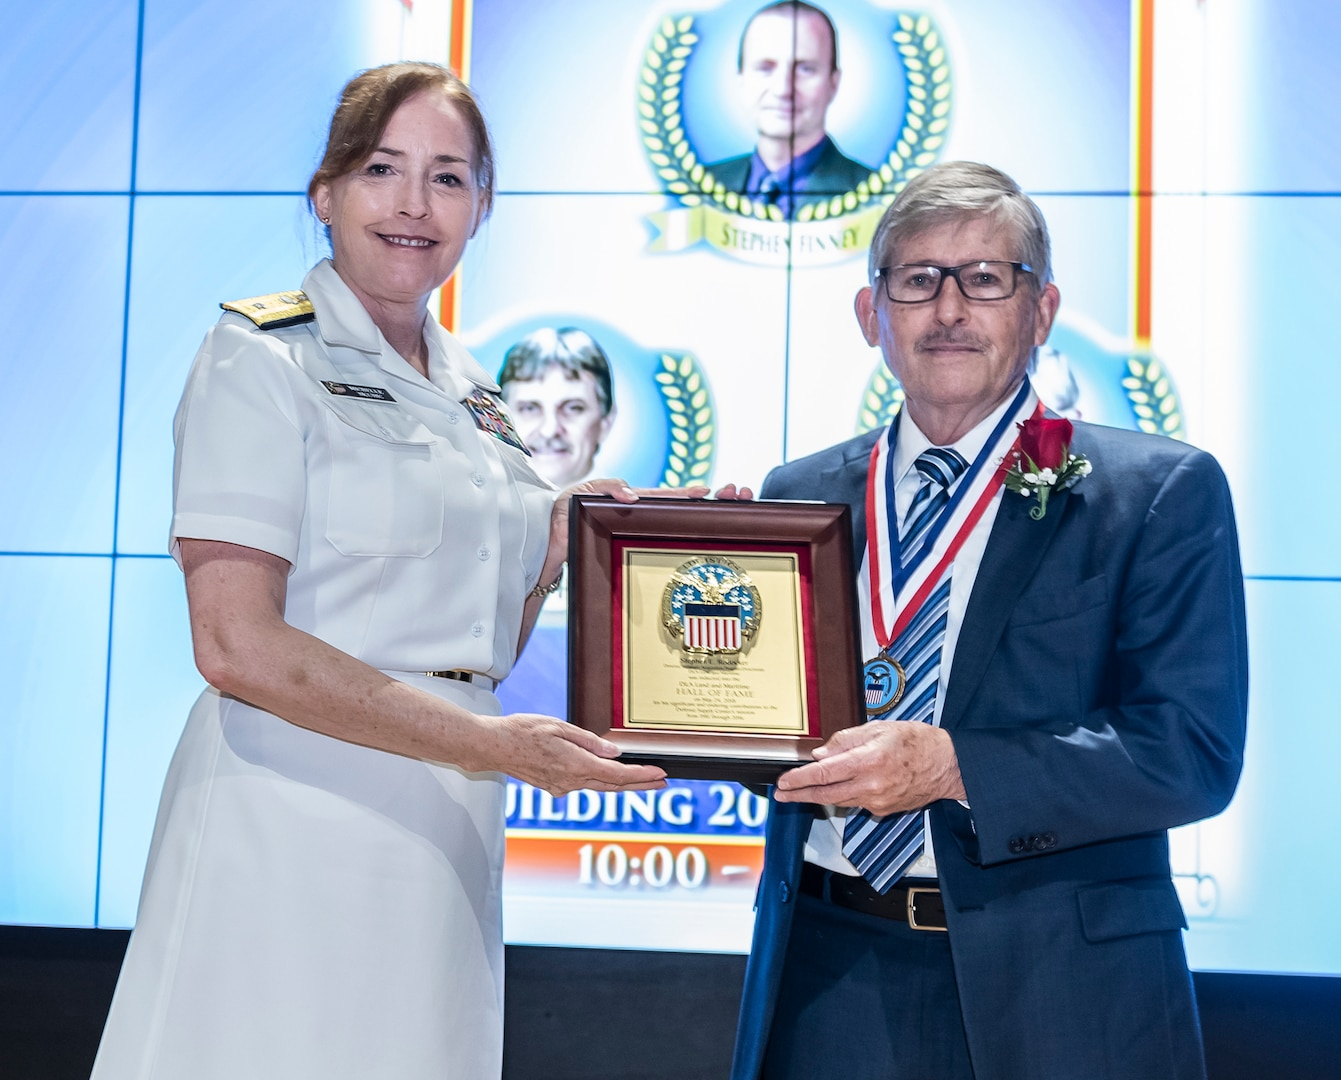 Stephen E. Rodocker receives a plaque and medal from Defense Logistics Agency Land and Maritime Commander Navy Rear Adm. Michelle Skubic